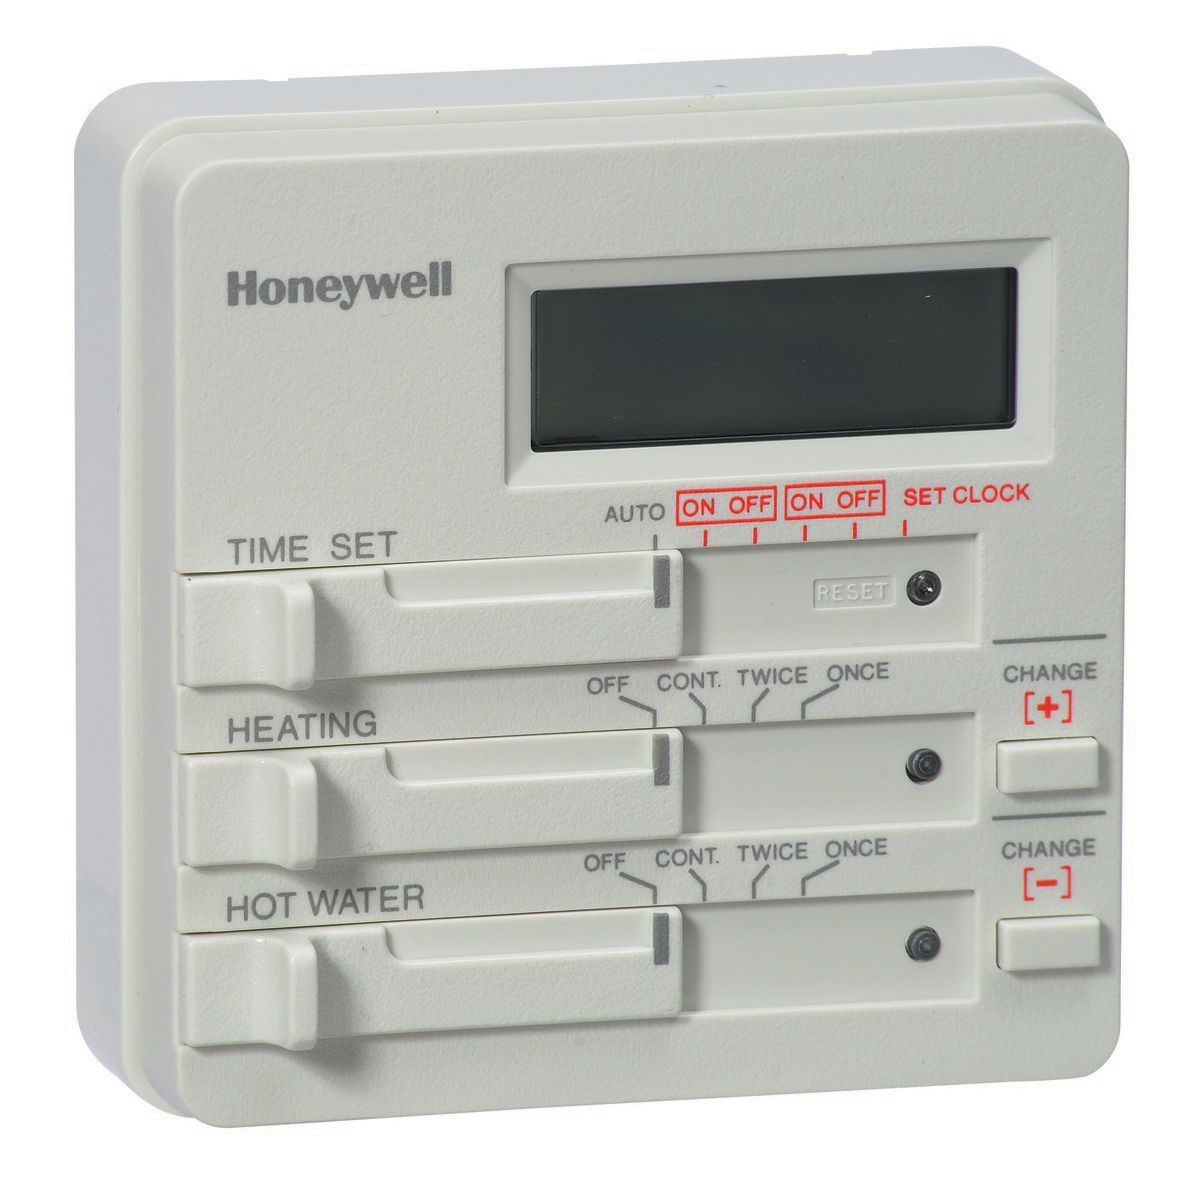 honeywell st699 24 hour programmer st699b1002 city plumbing supplies rh cityplumbing co uk Honeywell Thermostat Operating Manual Honeywell Home Alarm Systems Manual